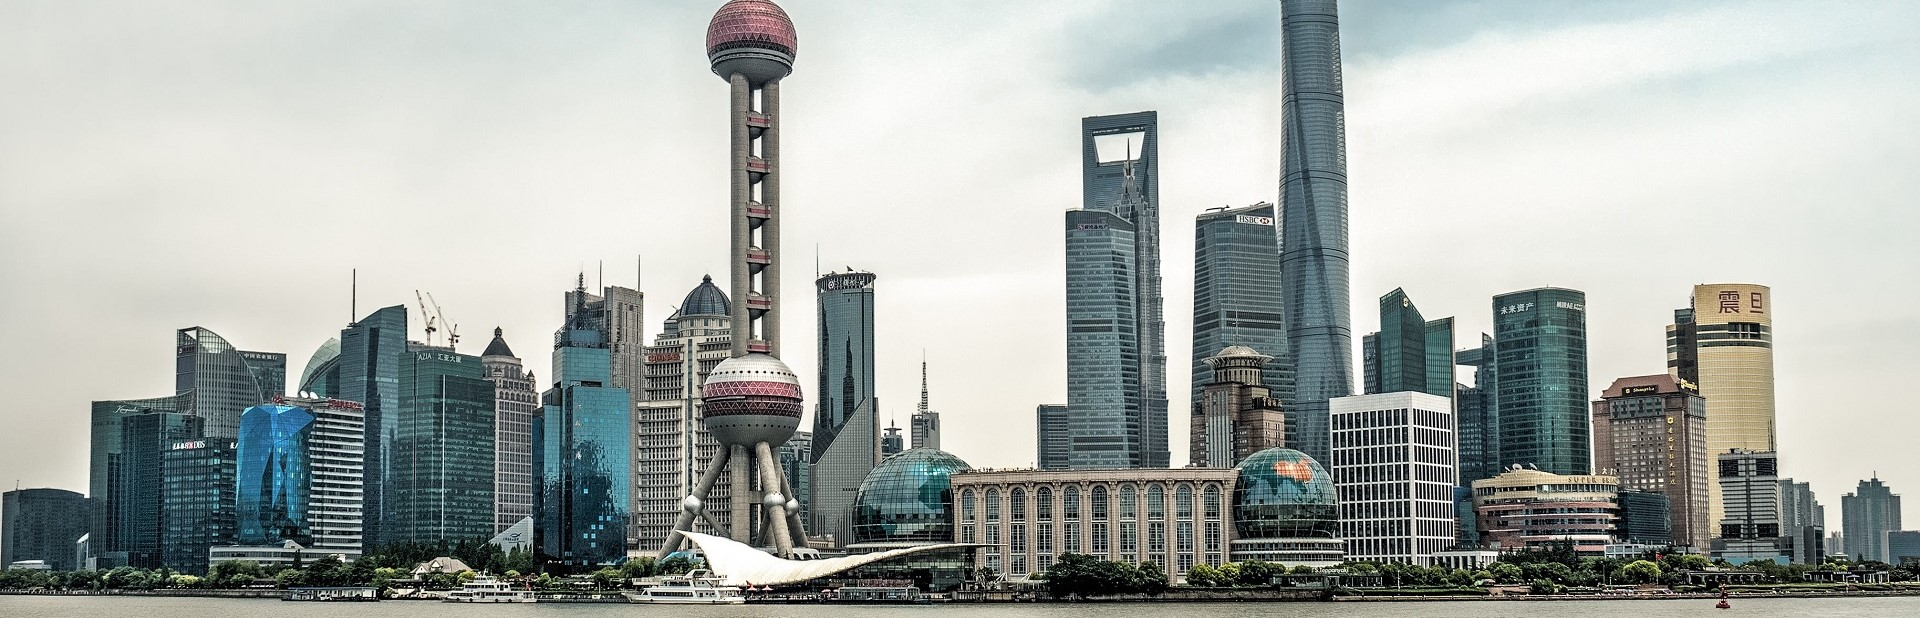 Shanghai_skyline_waterfront_pudong_5166168_69_70 (5)